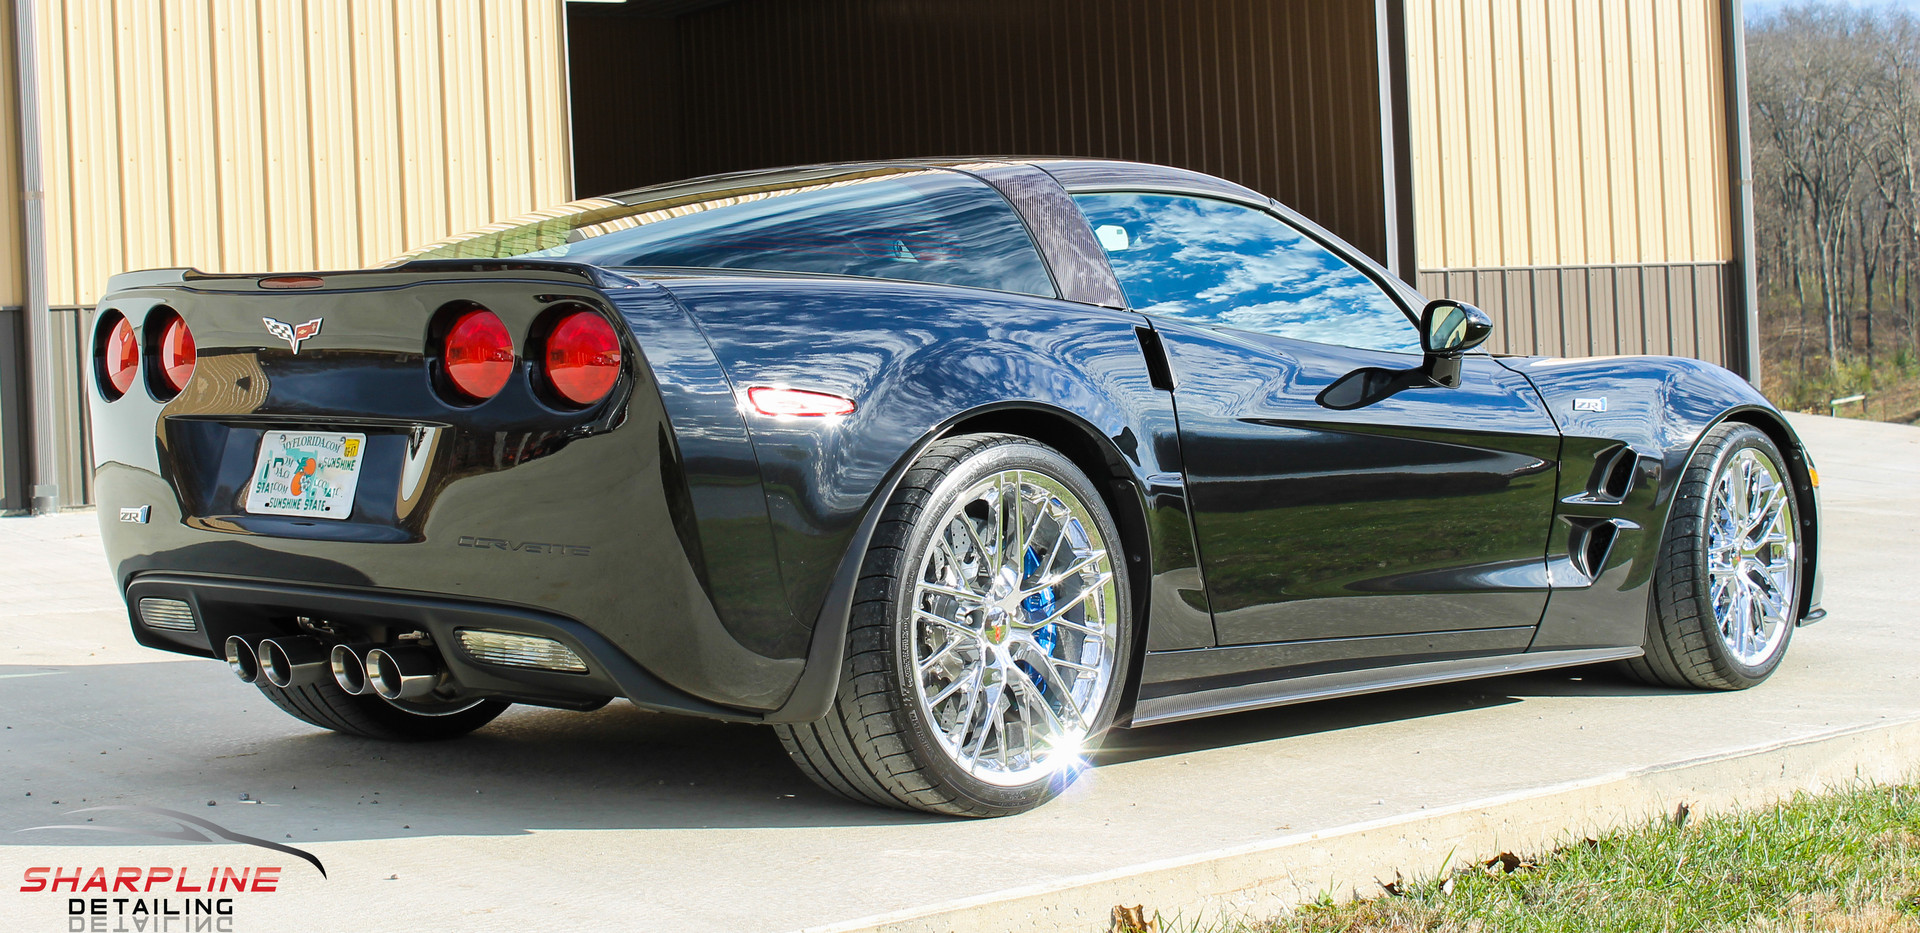 2011 Chevy Corvette ZR1